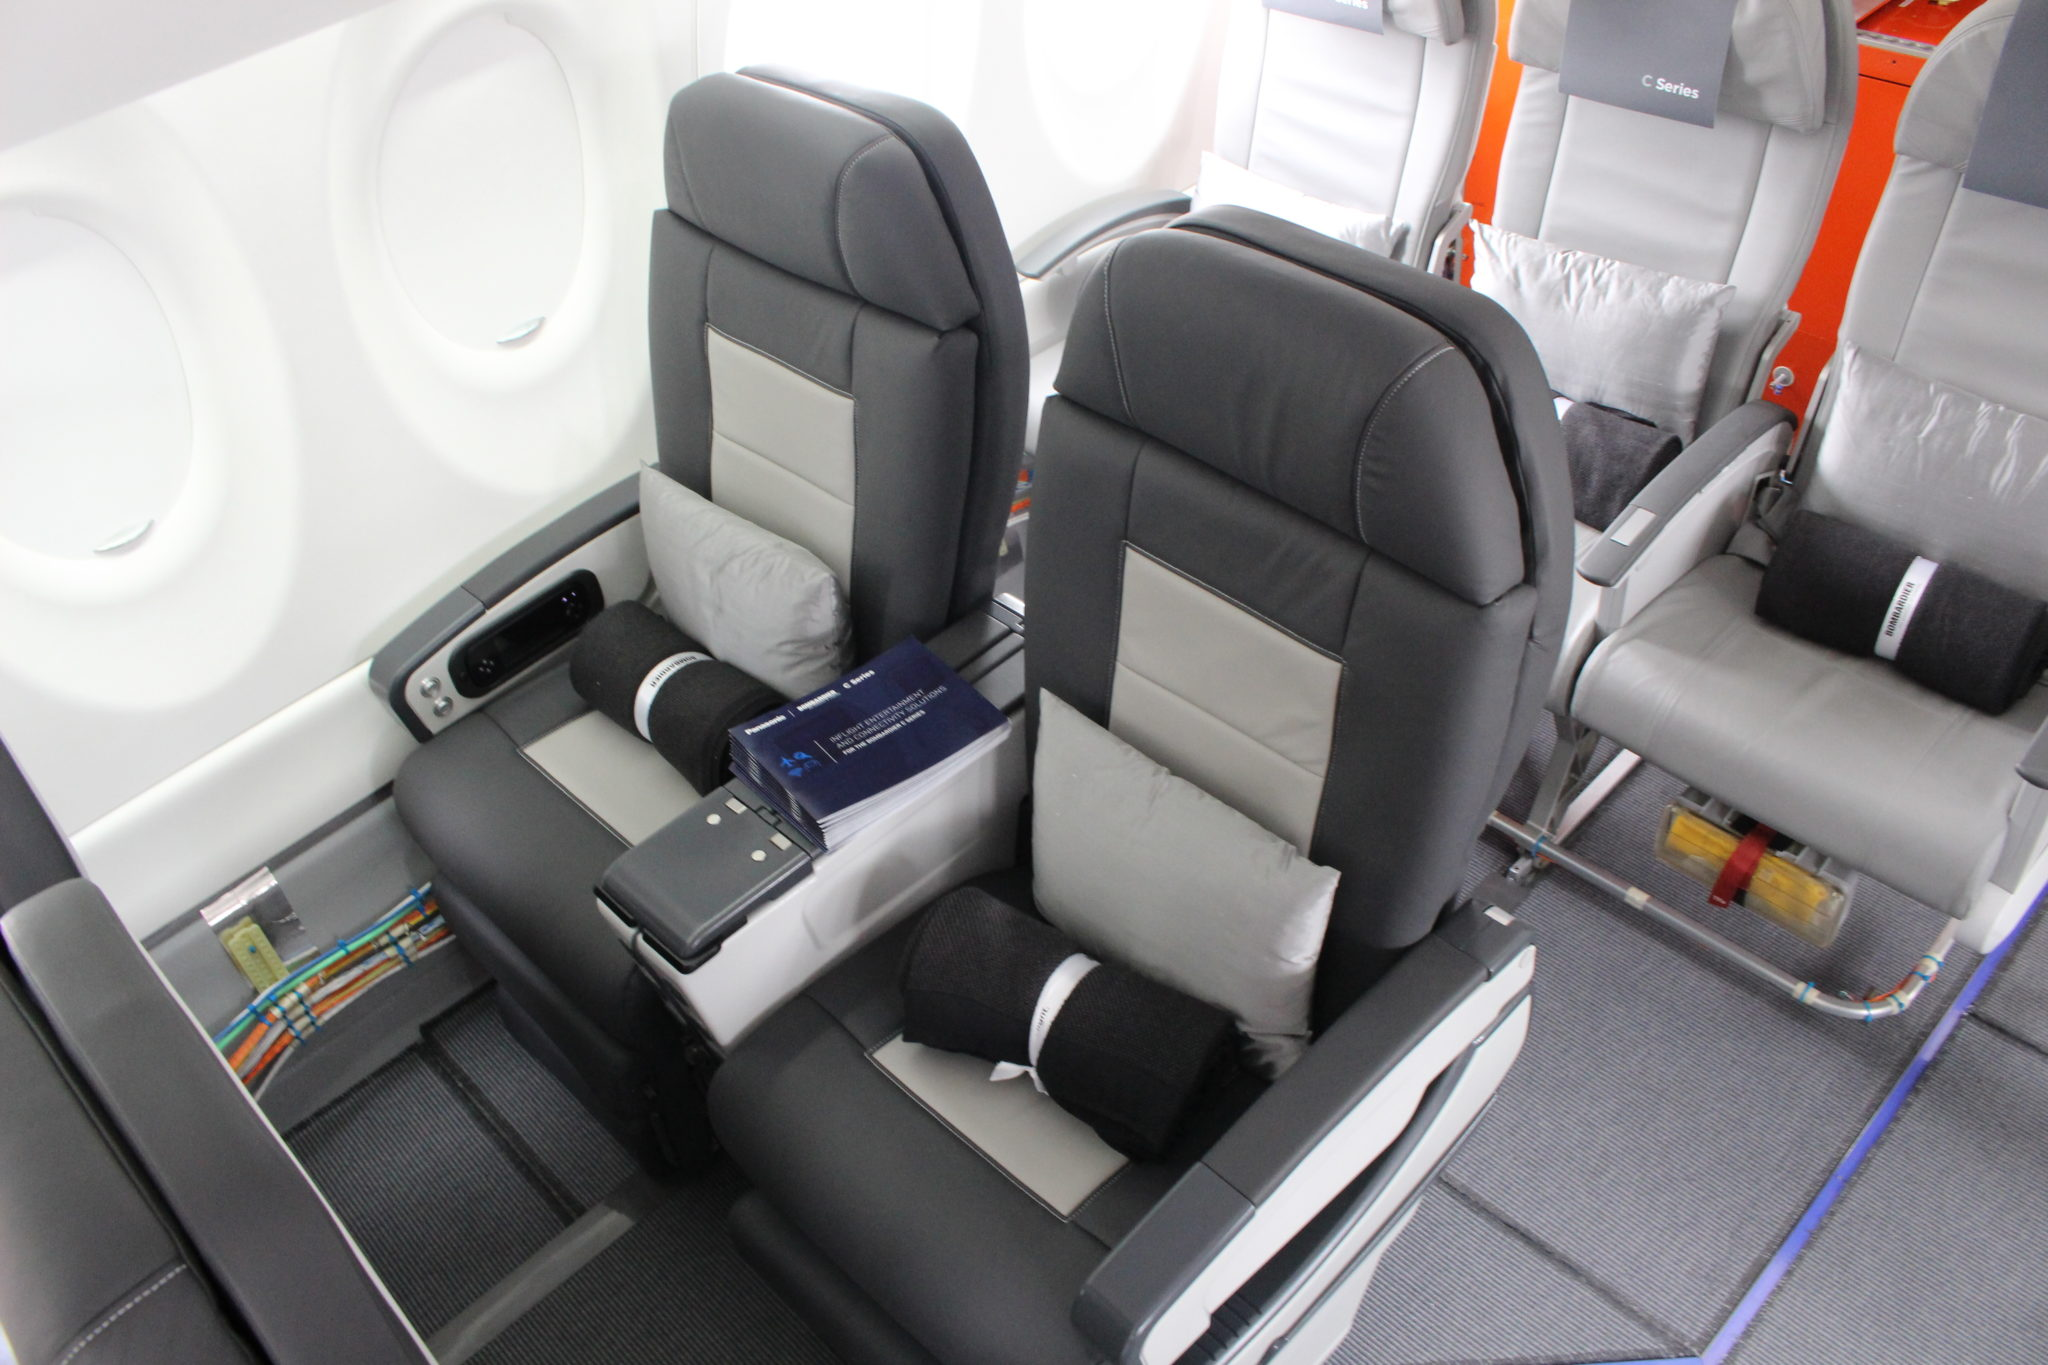 I'd expect the Delta and Air Canada recliners to look something like this test rig, seen at the Paris Air Show in 2015. Image: John Walton